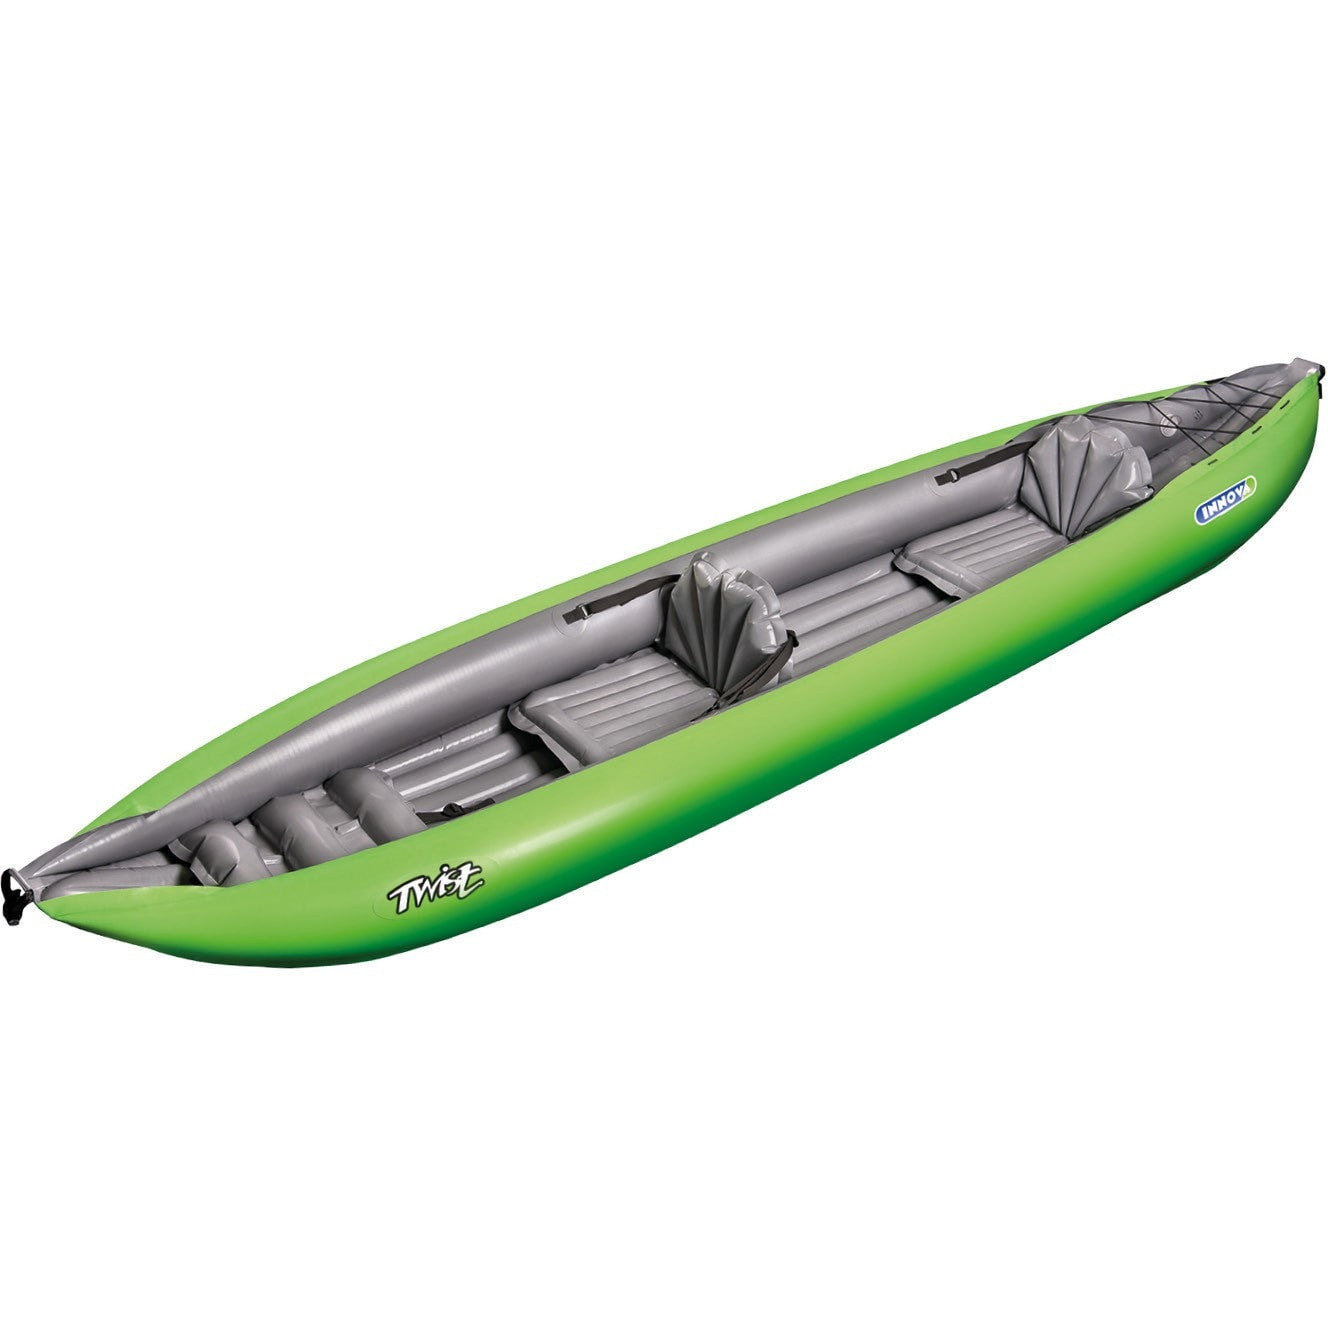 Innova Twist 2/1 Tandem Inflatable Kayak | NEW 2020 - Kayak Creek